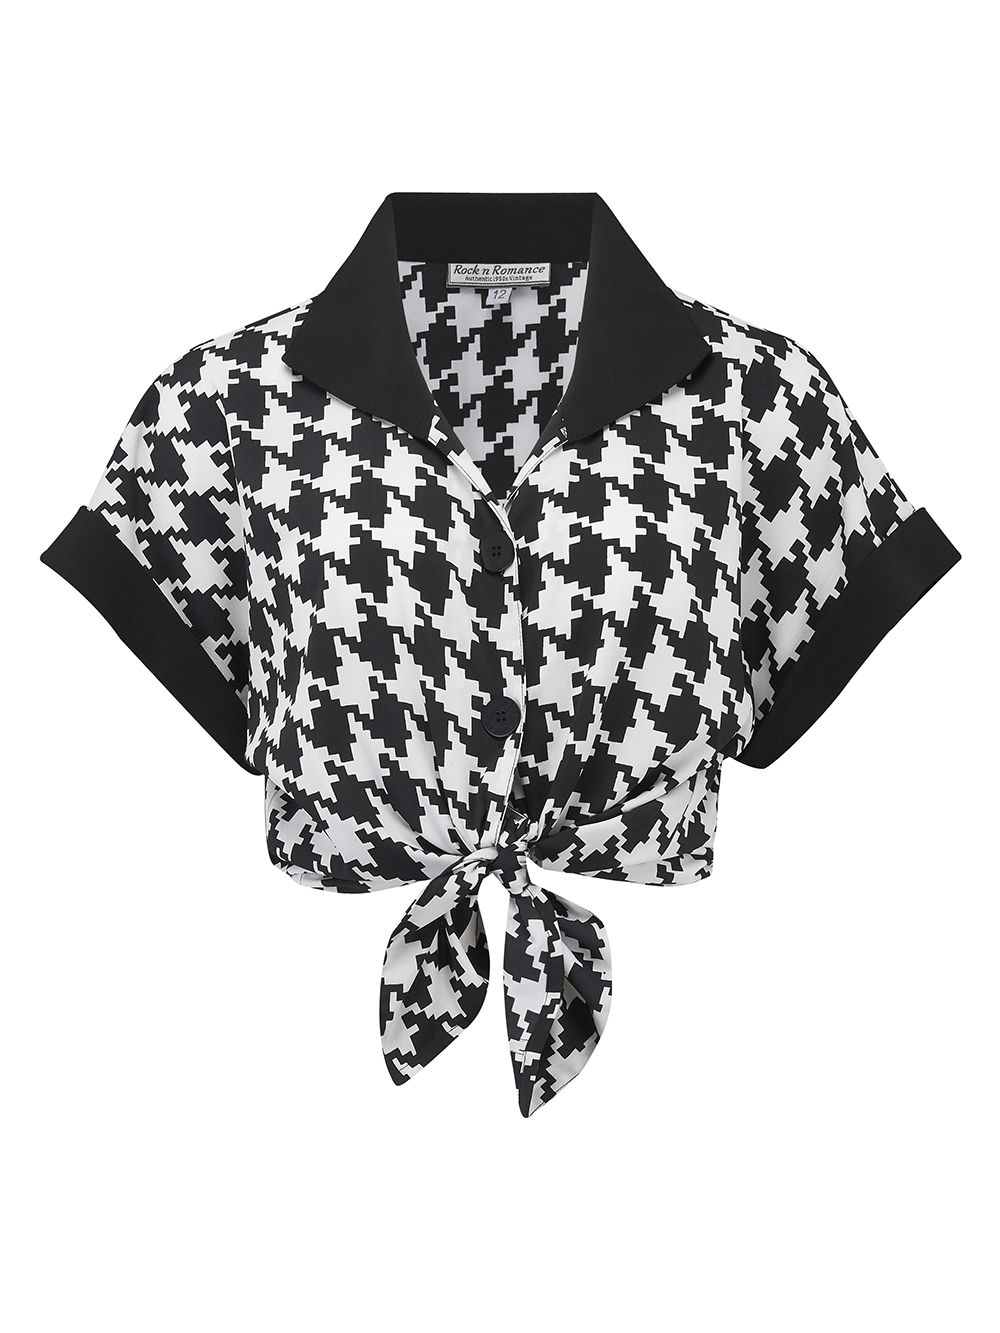 3ec205fee963a9 Tie it up OR Tuck it in ? You choose .. create your own unique classic vintage  style, Sassy black and white hounds tooth just perfect .. from day to night  ...